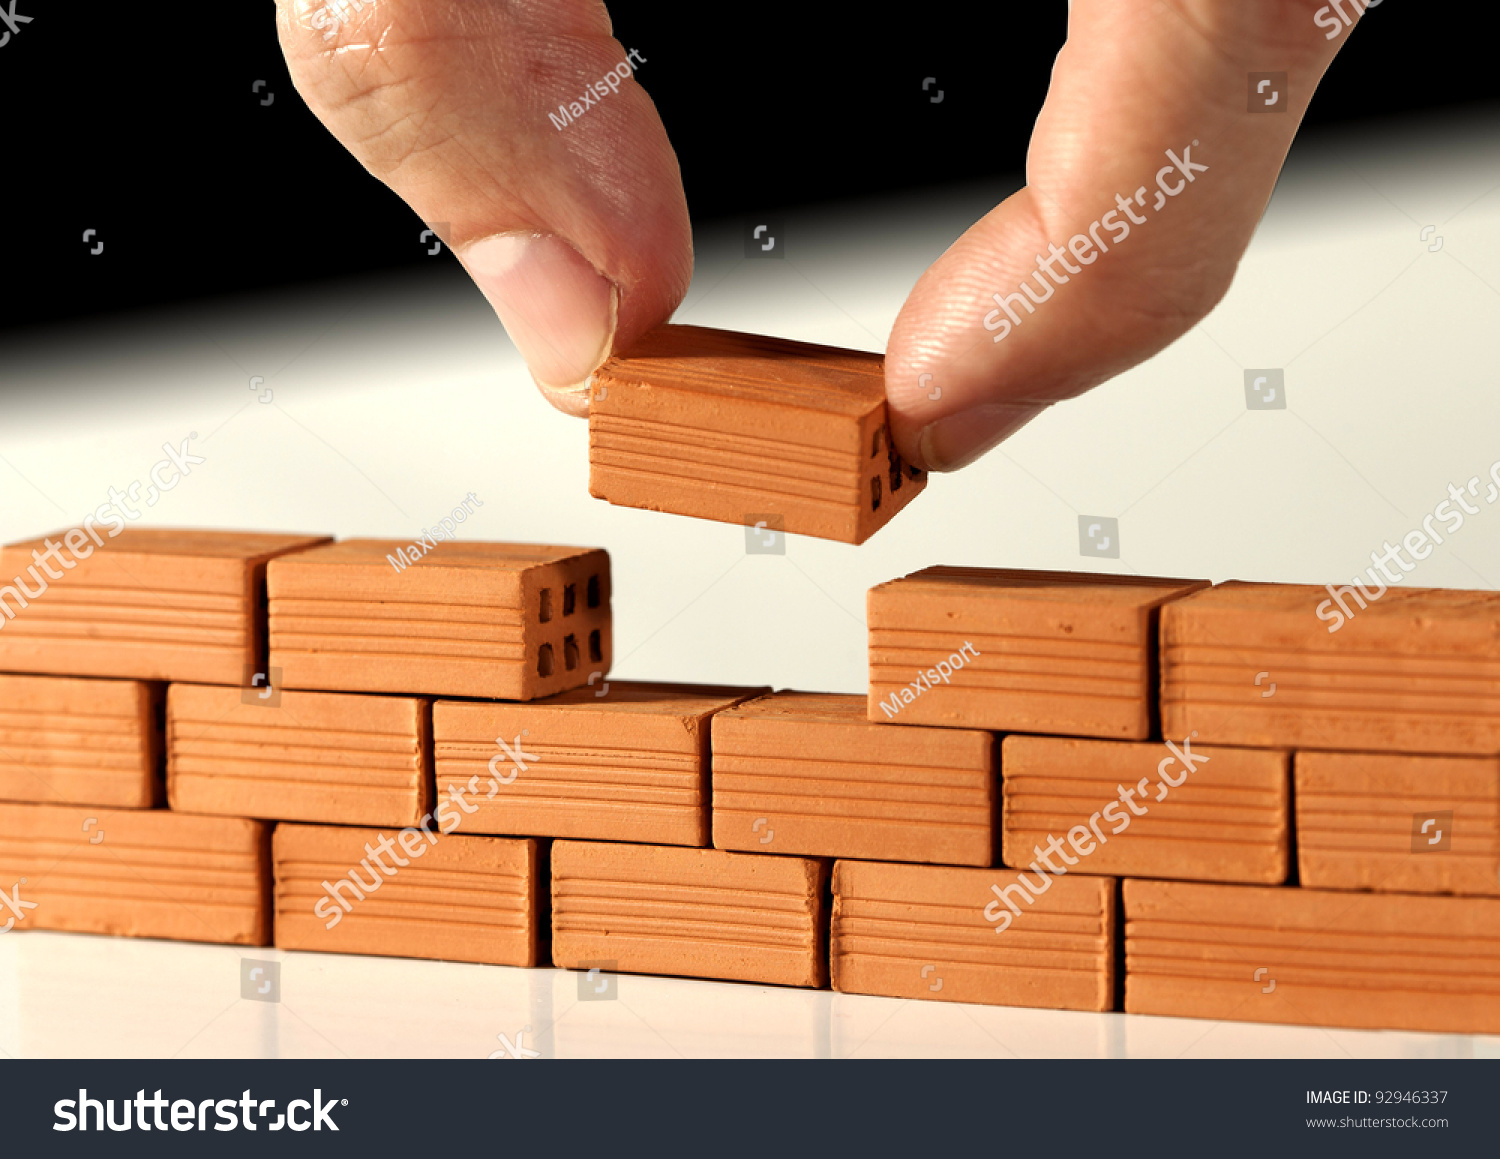 Two Fingers Put Last Brick On Stock Photo 92946337. Best Living Room Designs 2013. Where To Place Furniture In Living Room. Simple Small Living Room Decorating Ideas. Living Rooms With Black Couches. Sofa In Small Living Room. Wallpaper Living Room Ideas For Decorating. Corner Showcase Designs For Living Room. French Living Room Ideas